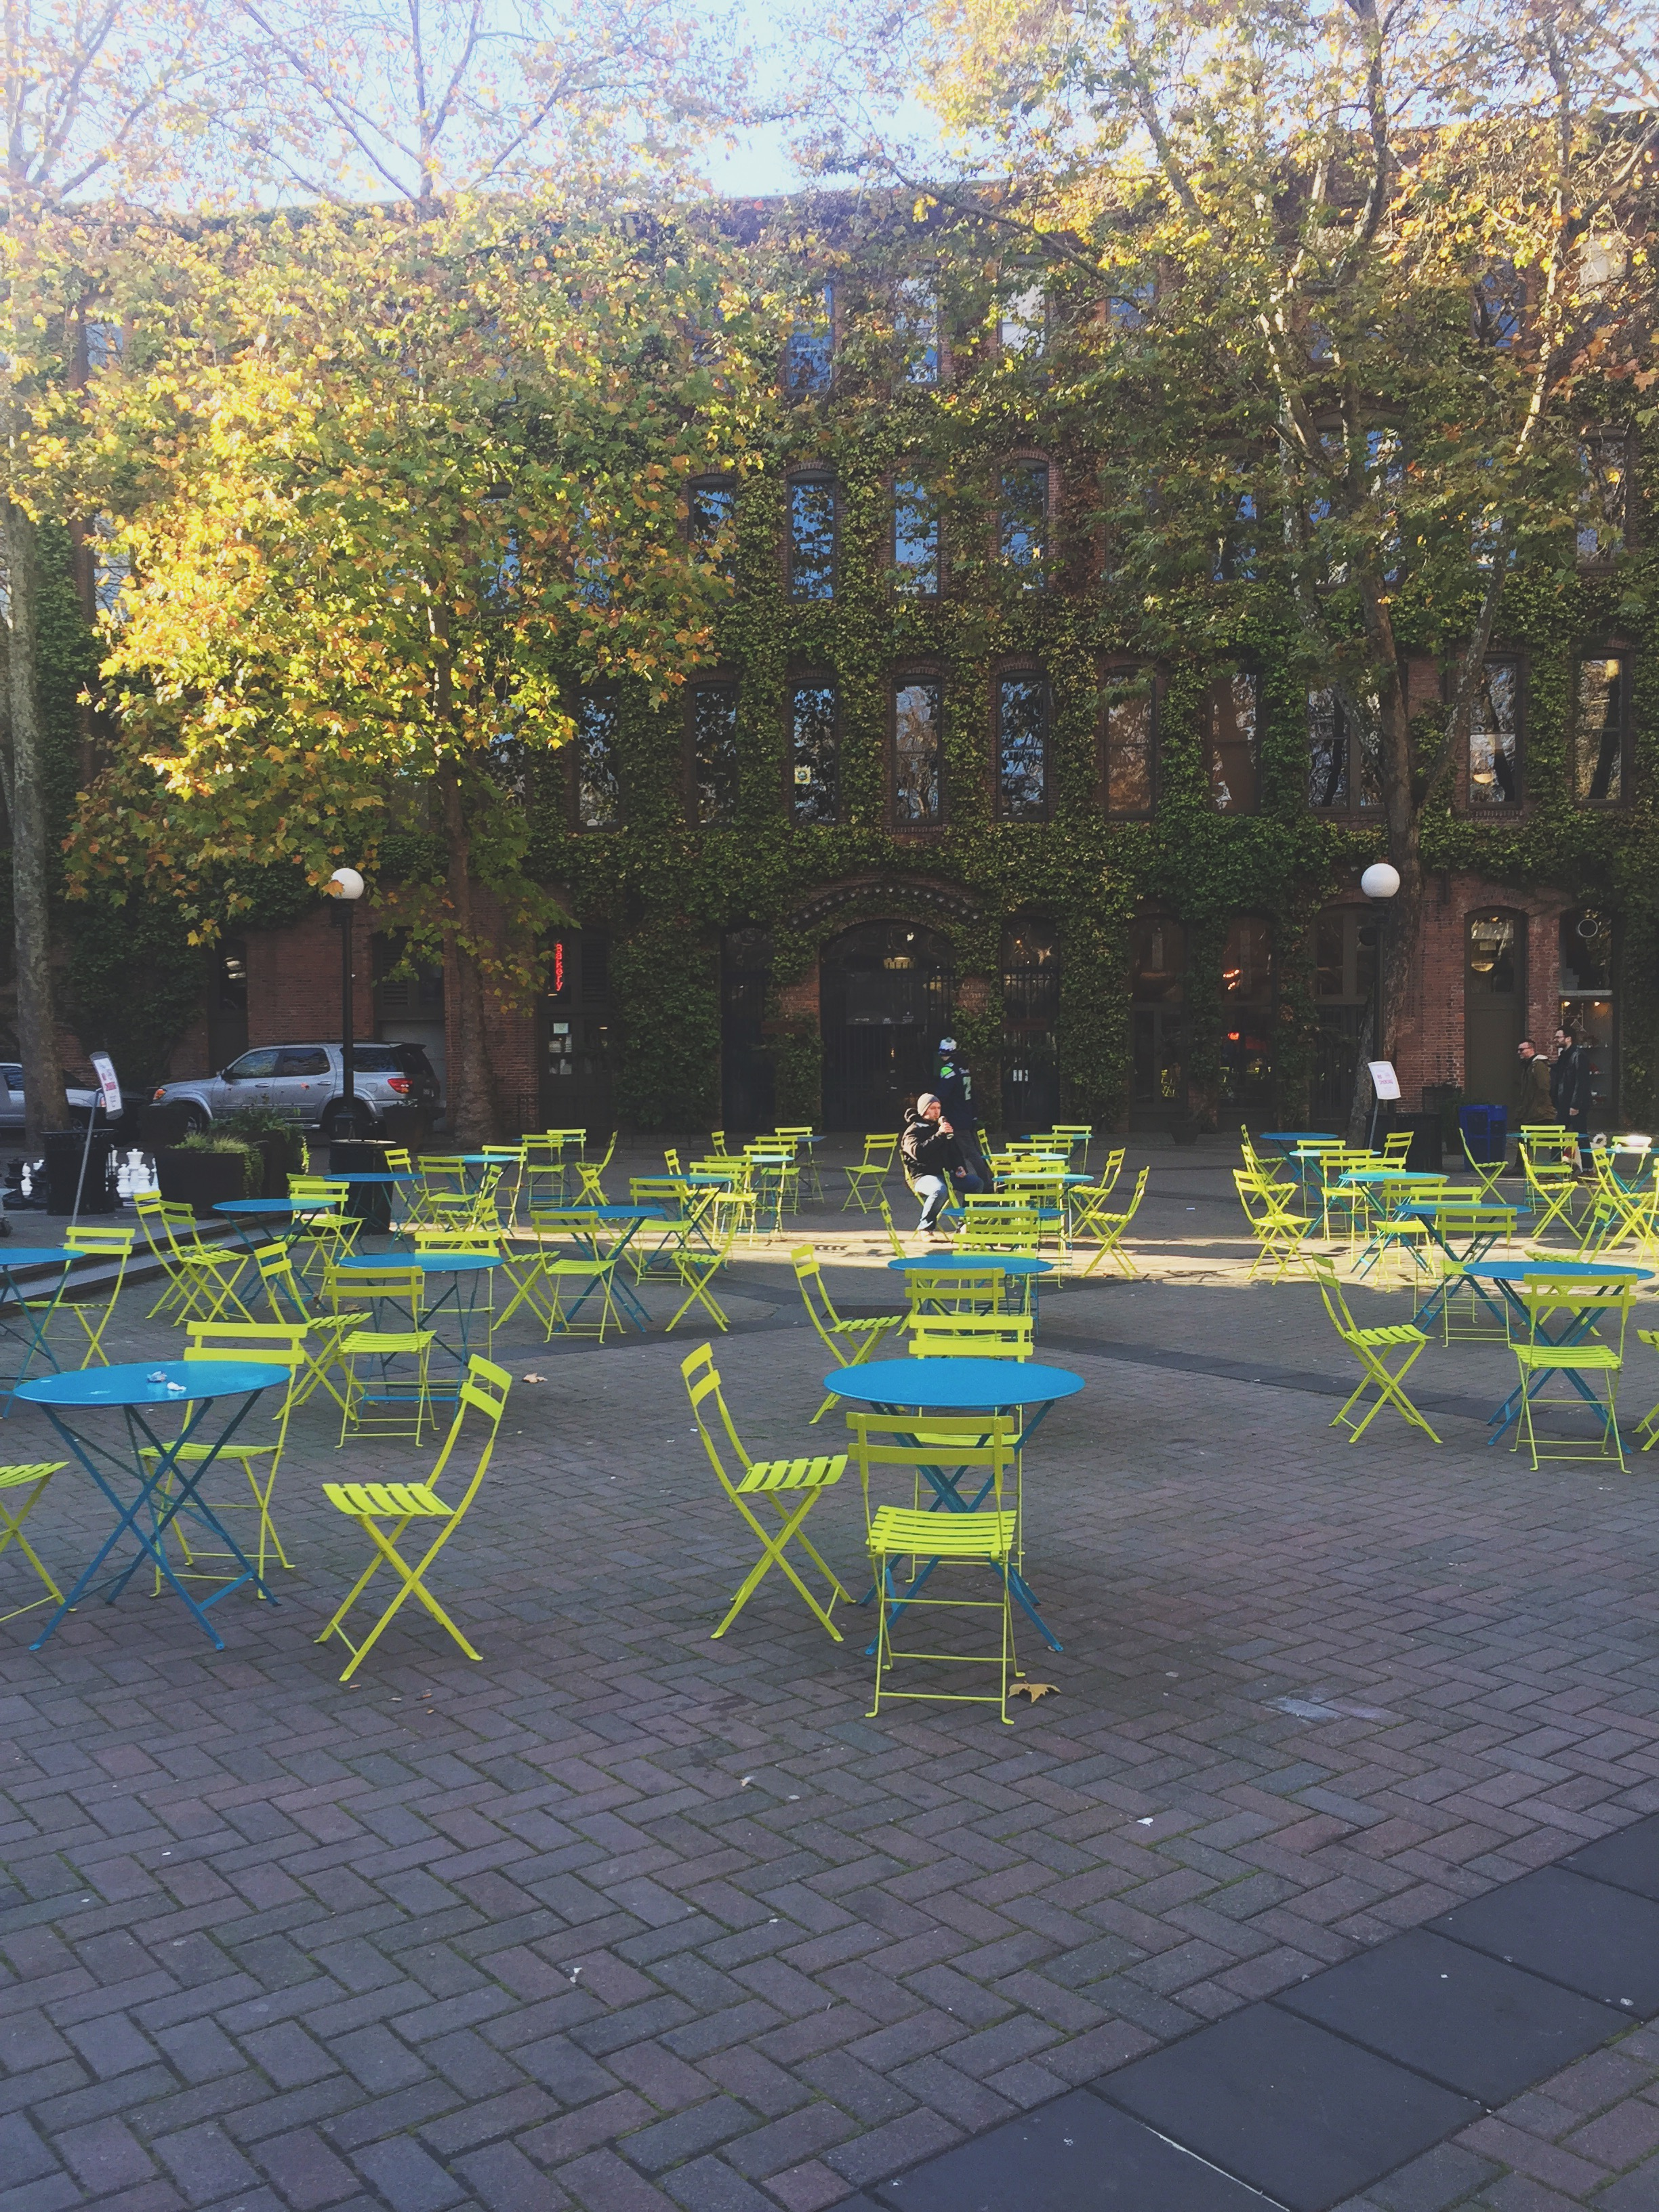 Pioneer Square. Eureka coffee, Tat's famous deli and many other delicious eats and shops!